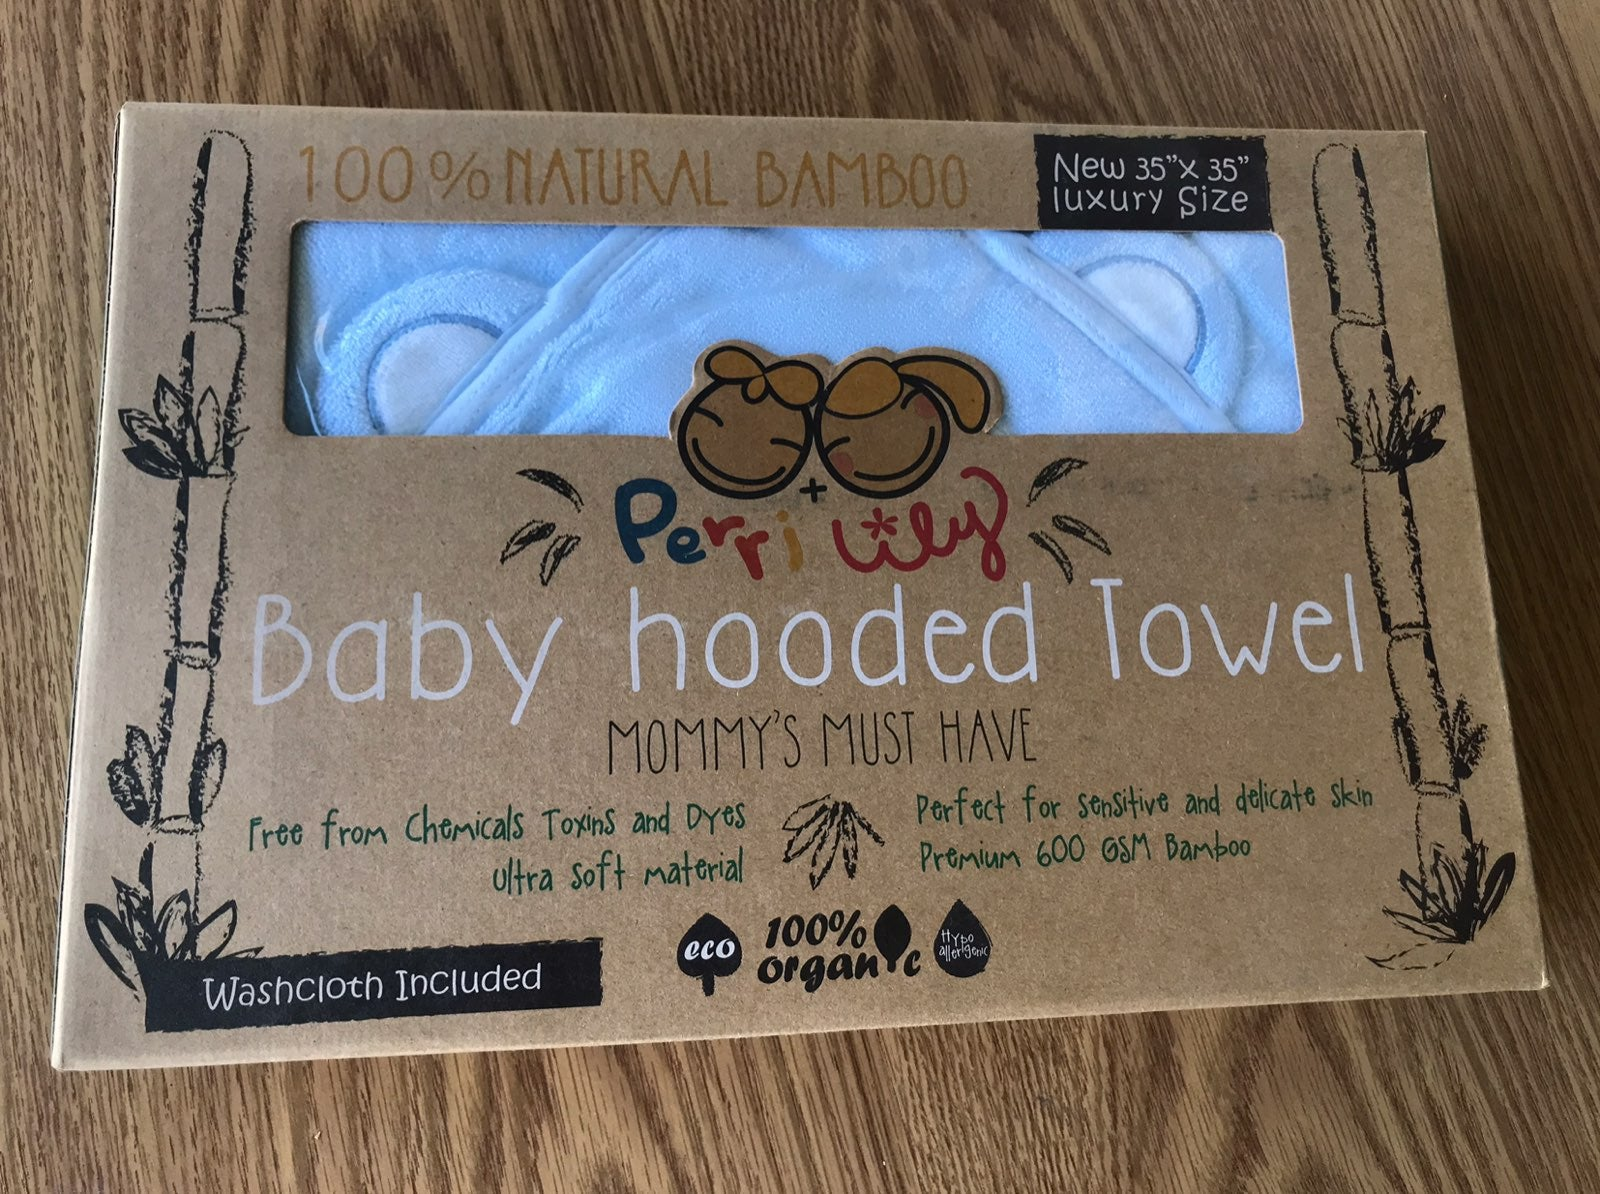 Baby hooded towel 100% natural bamboo